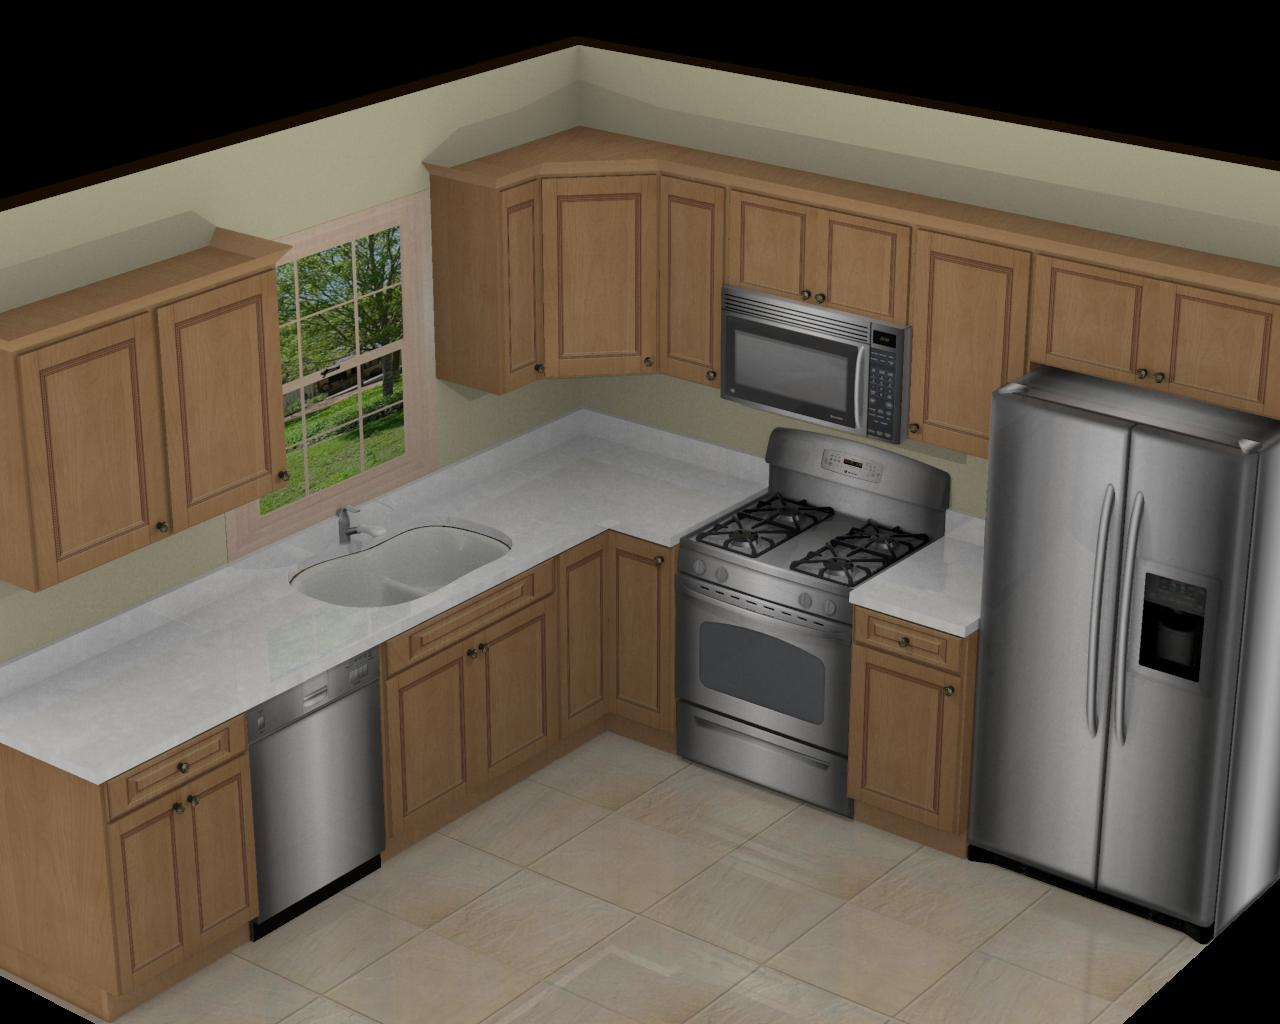 Foundation dezin decor 3d kitchen model design - Pics of kitchen designs ...